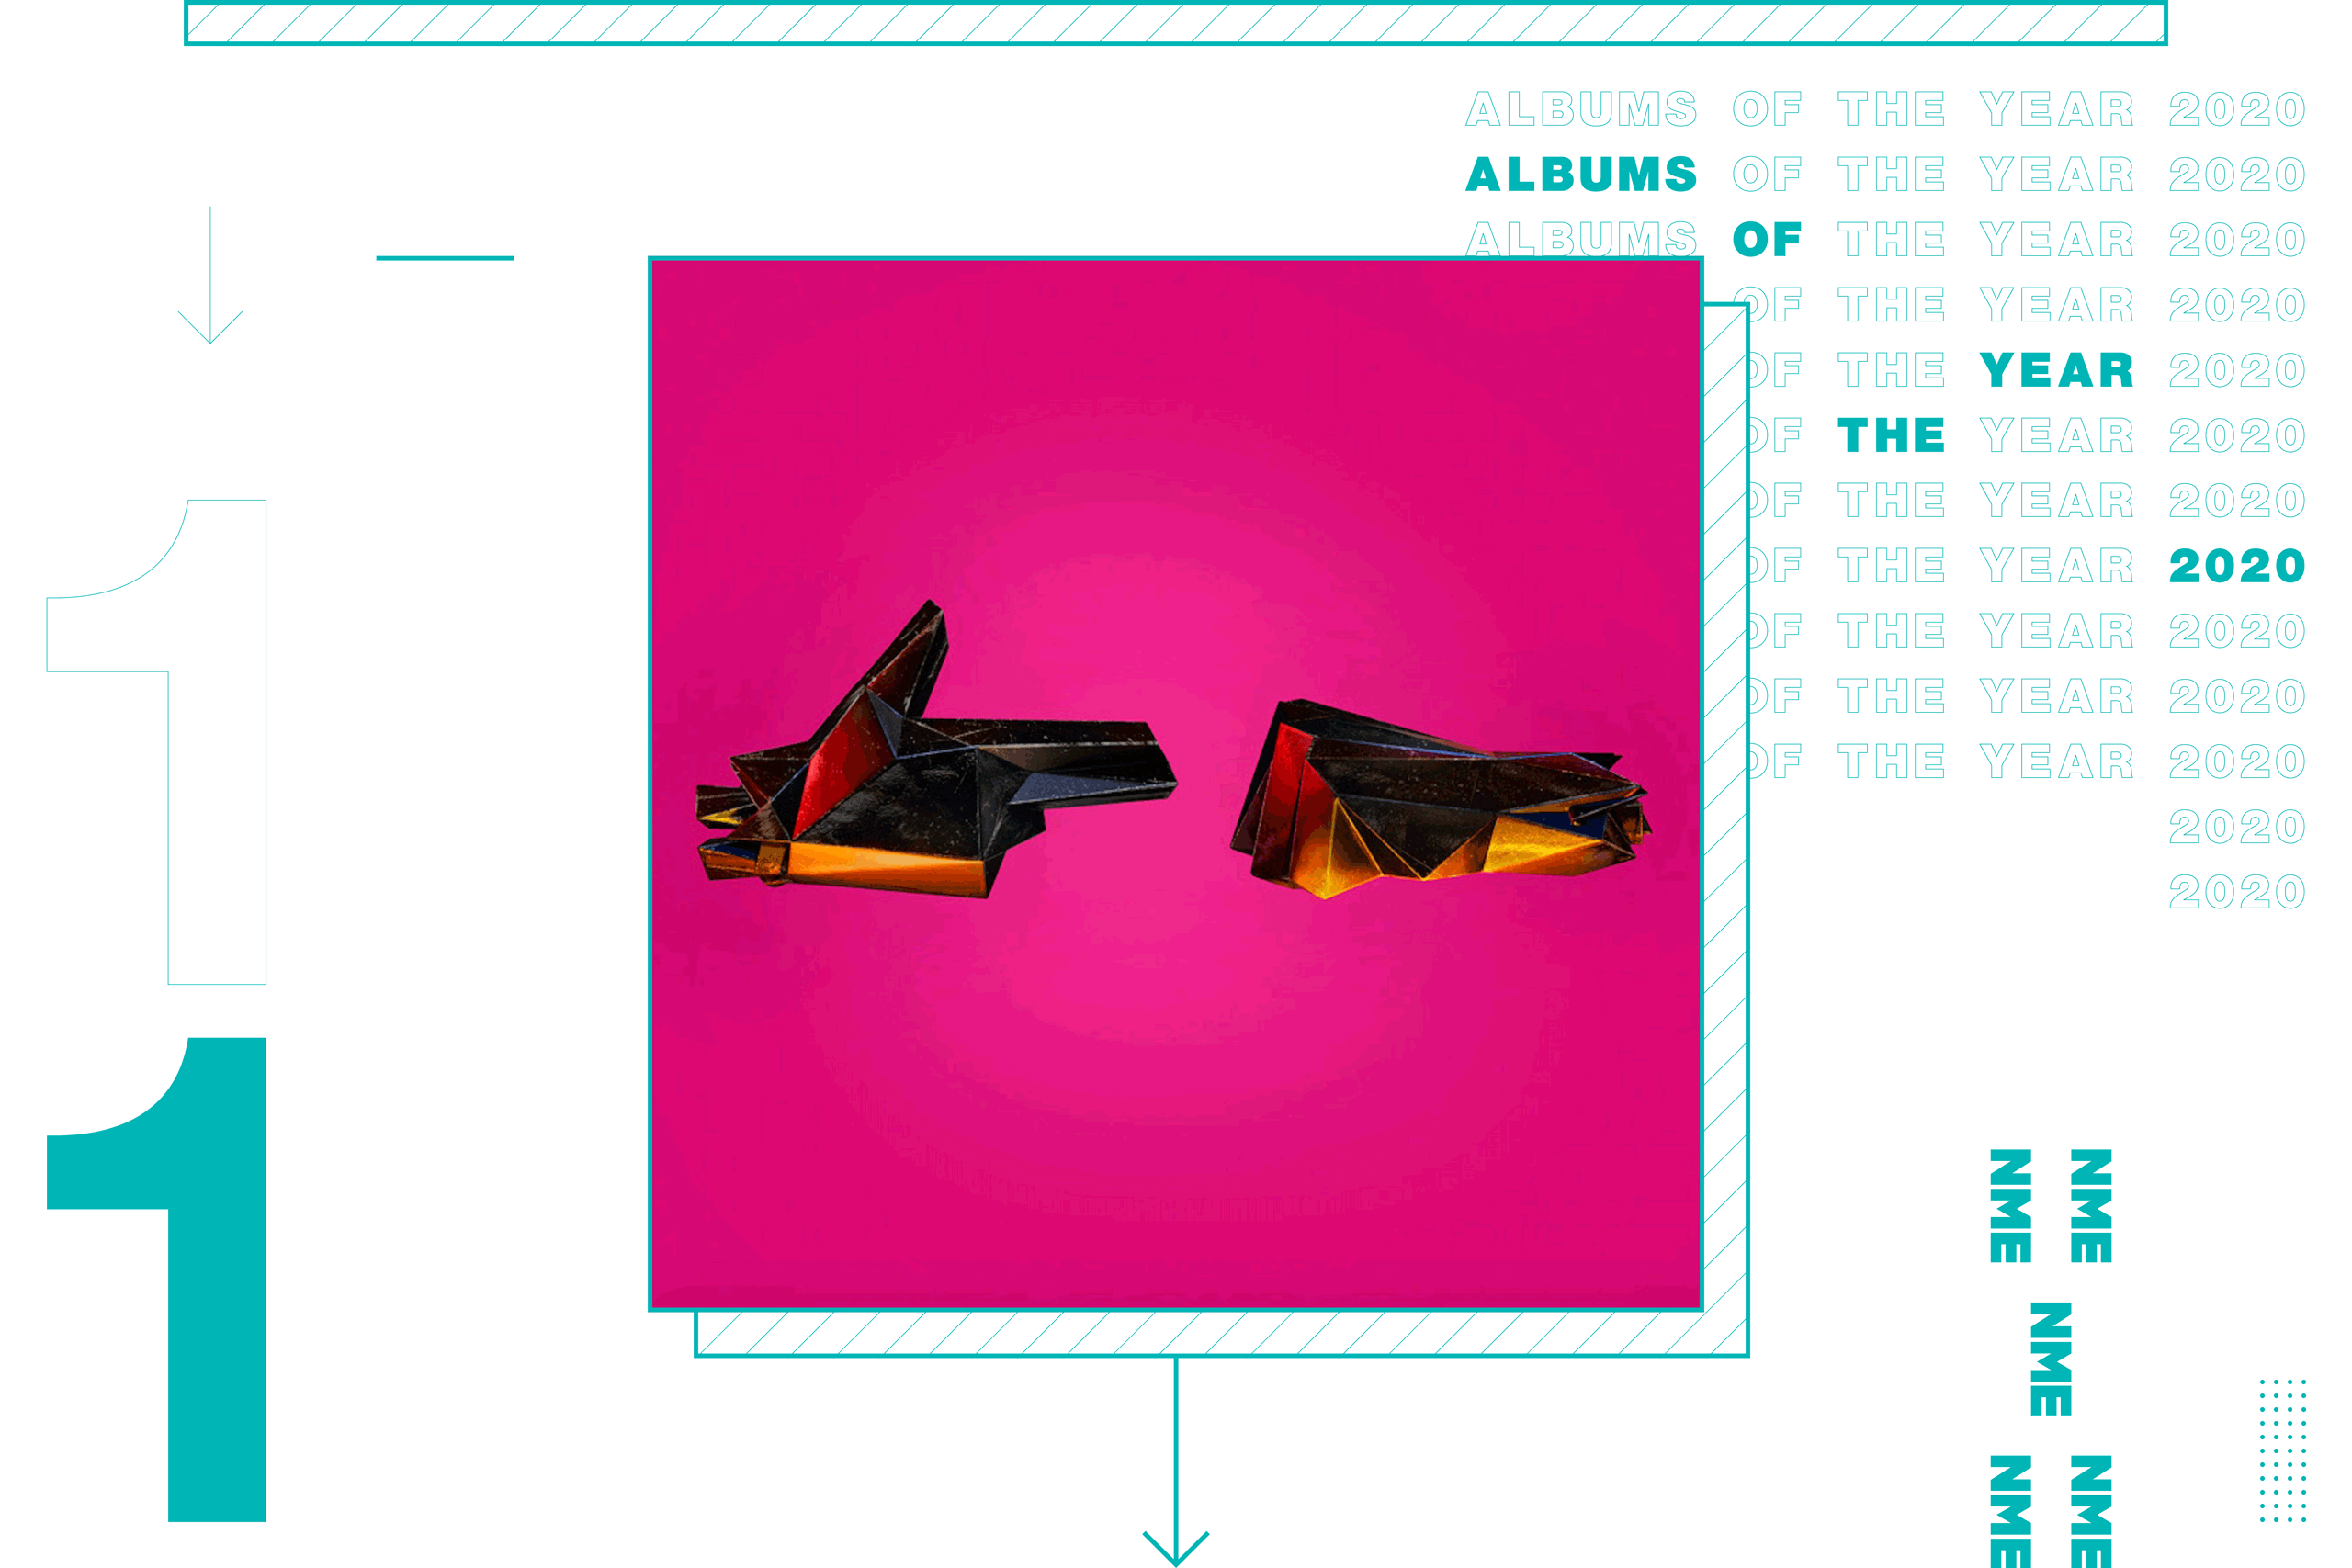 NME Album Of The Year 2020 Run the Jewels, 'RTJ4'